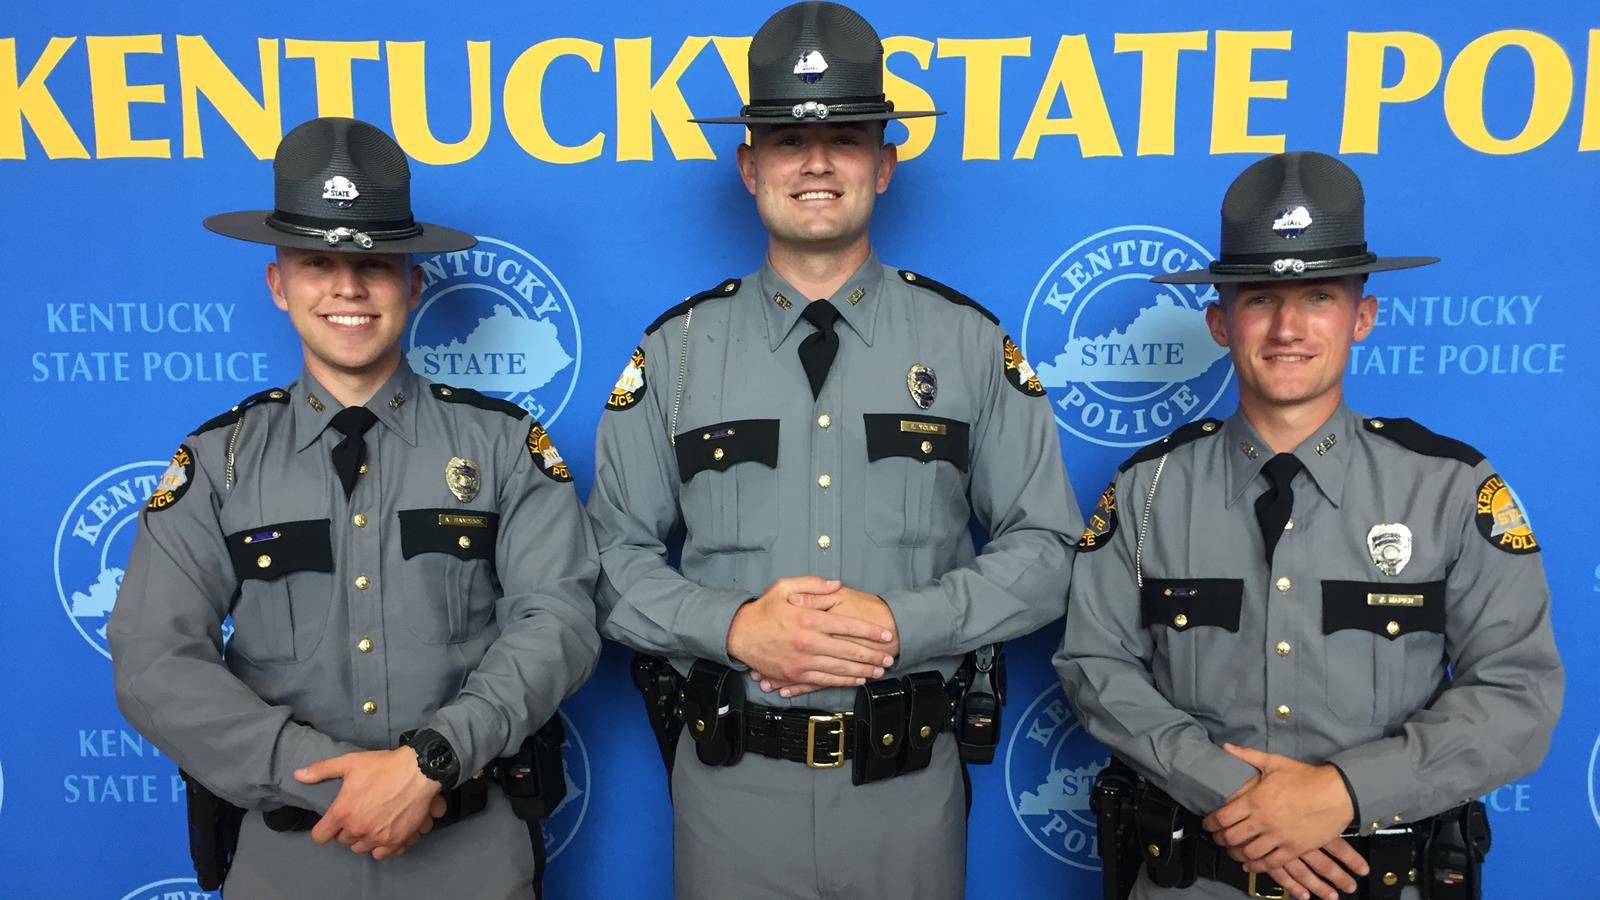 State Trooper Home Pages